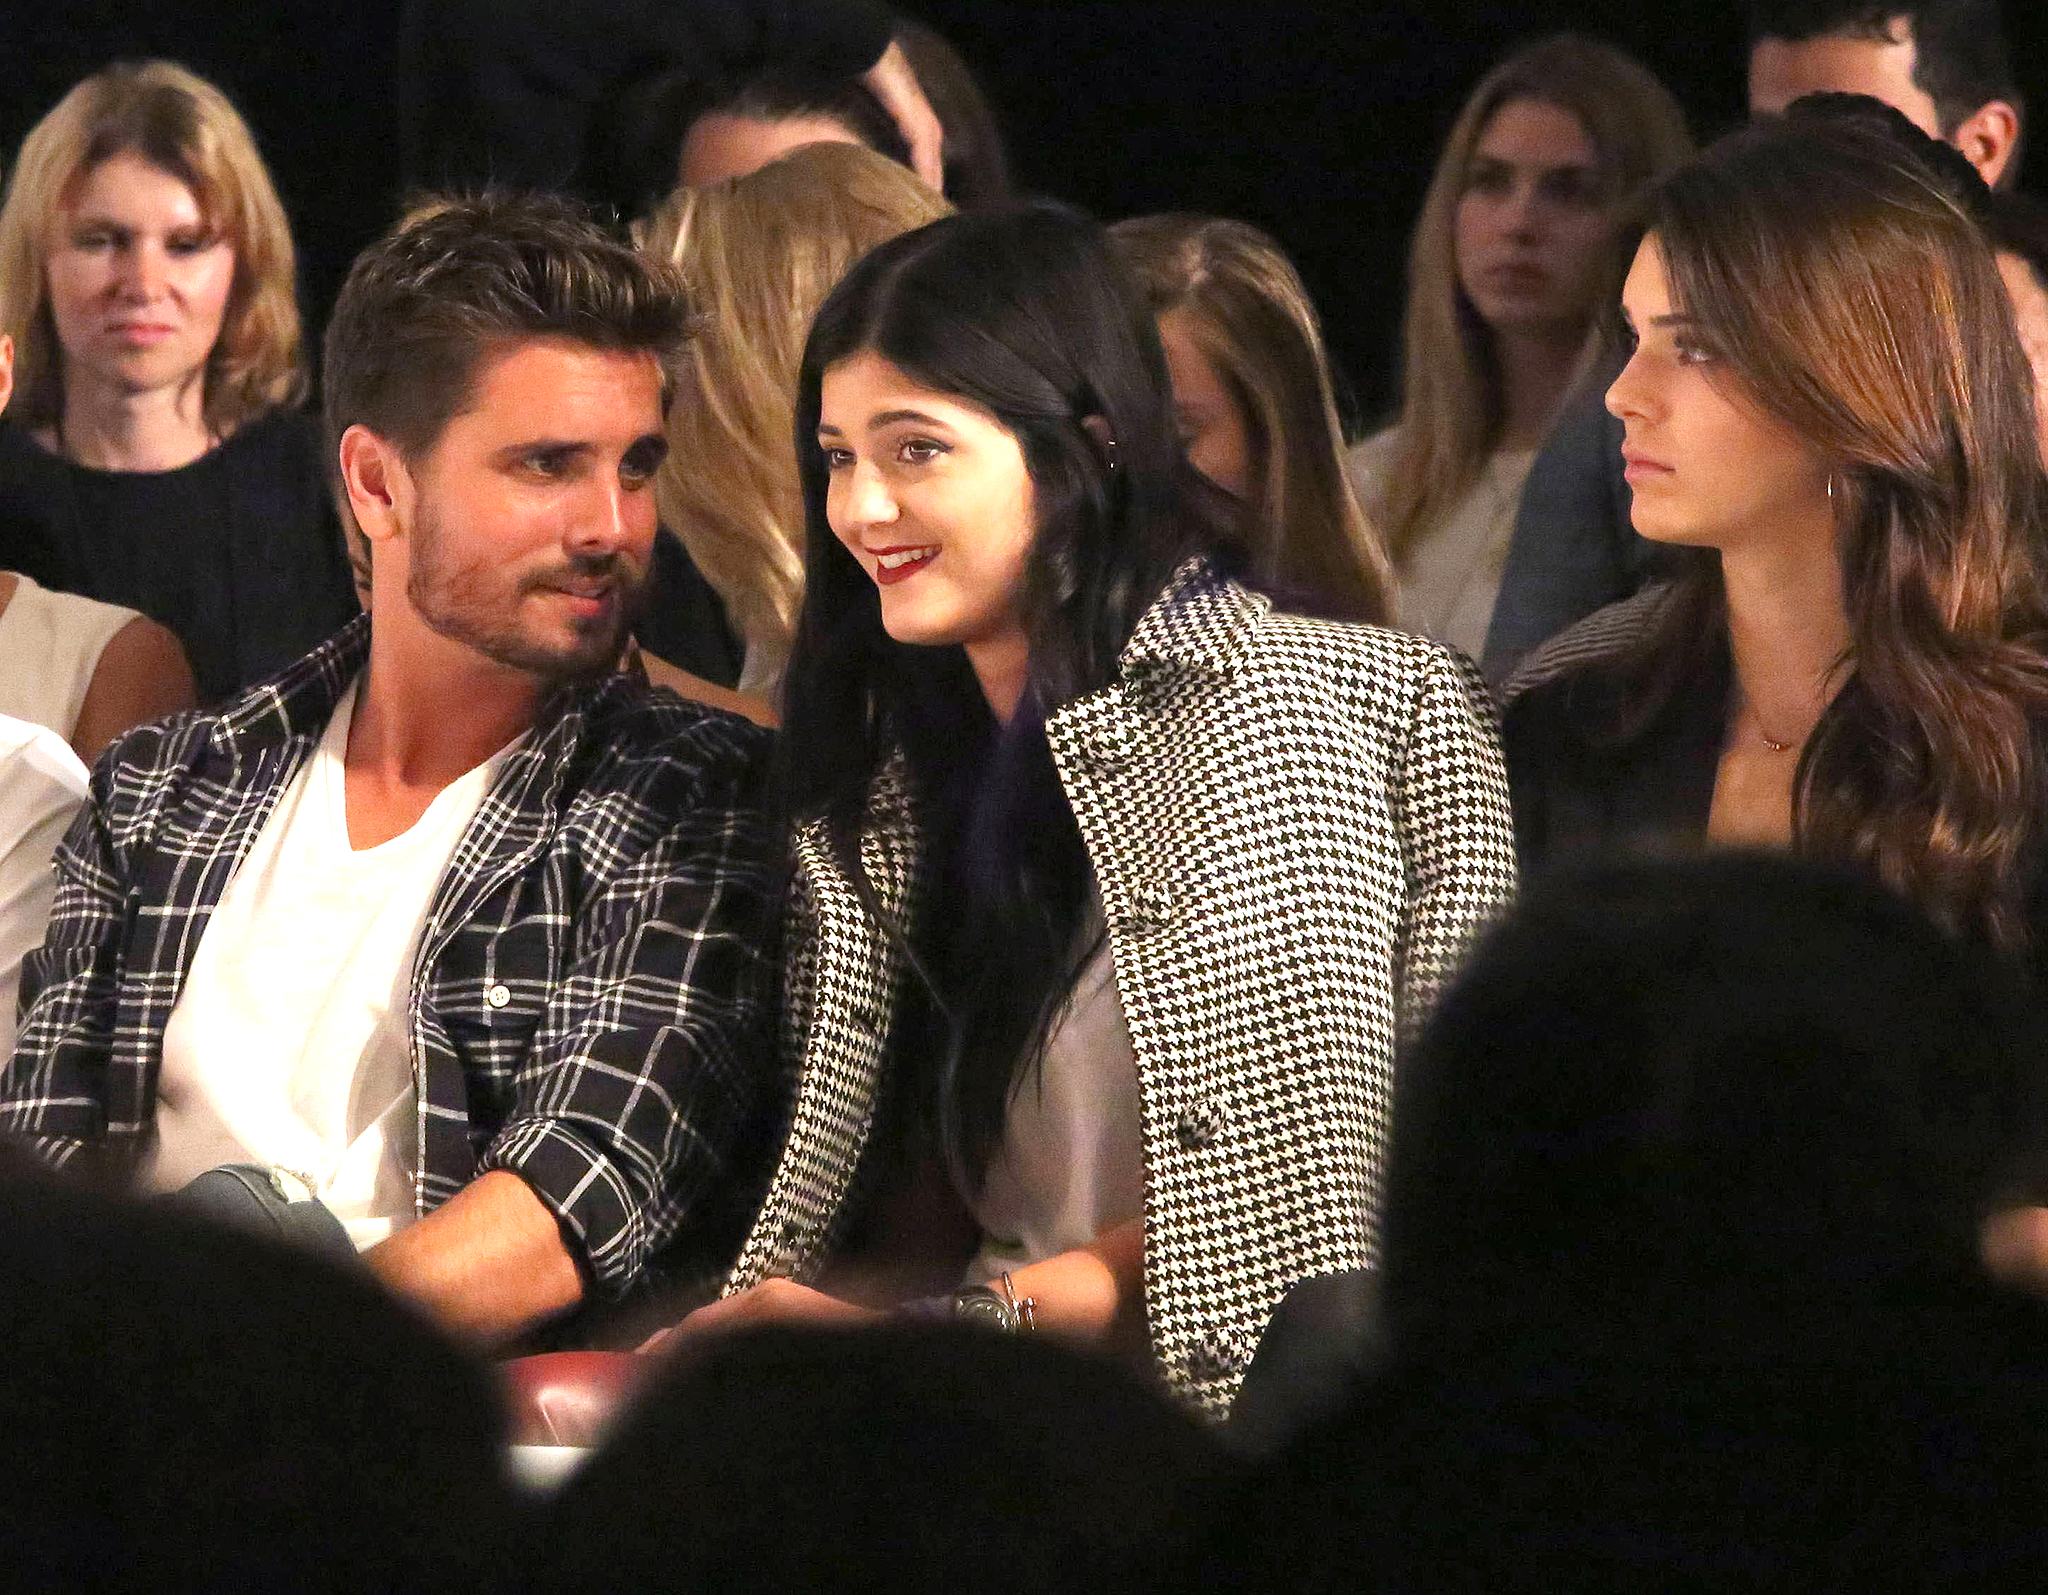 Scott, Kylie, and Kendall at Day by Day fashion show (FameFlynet)